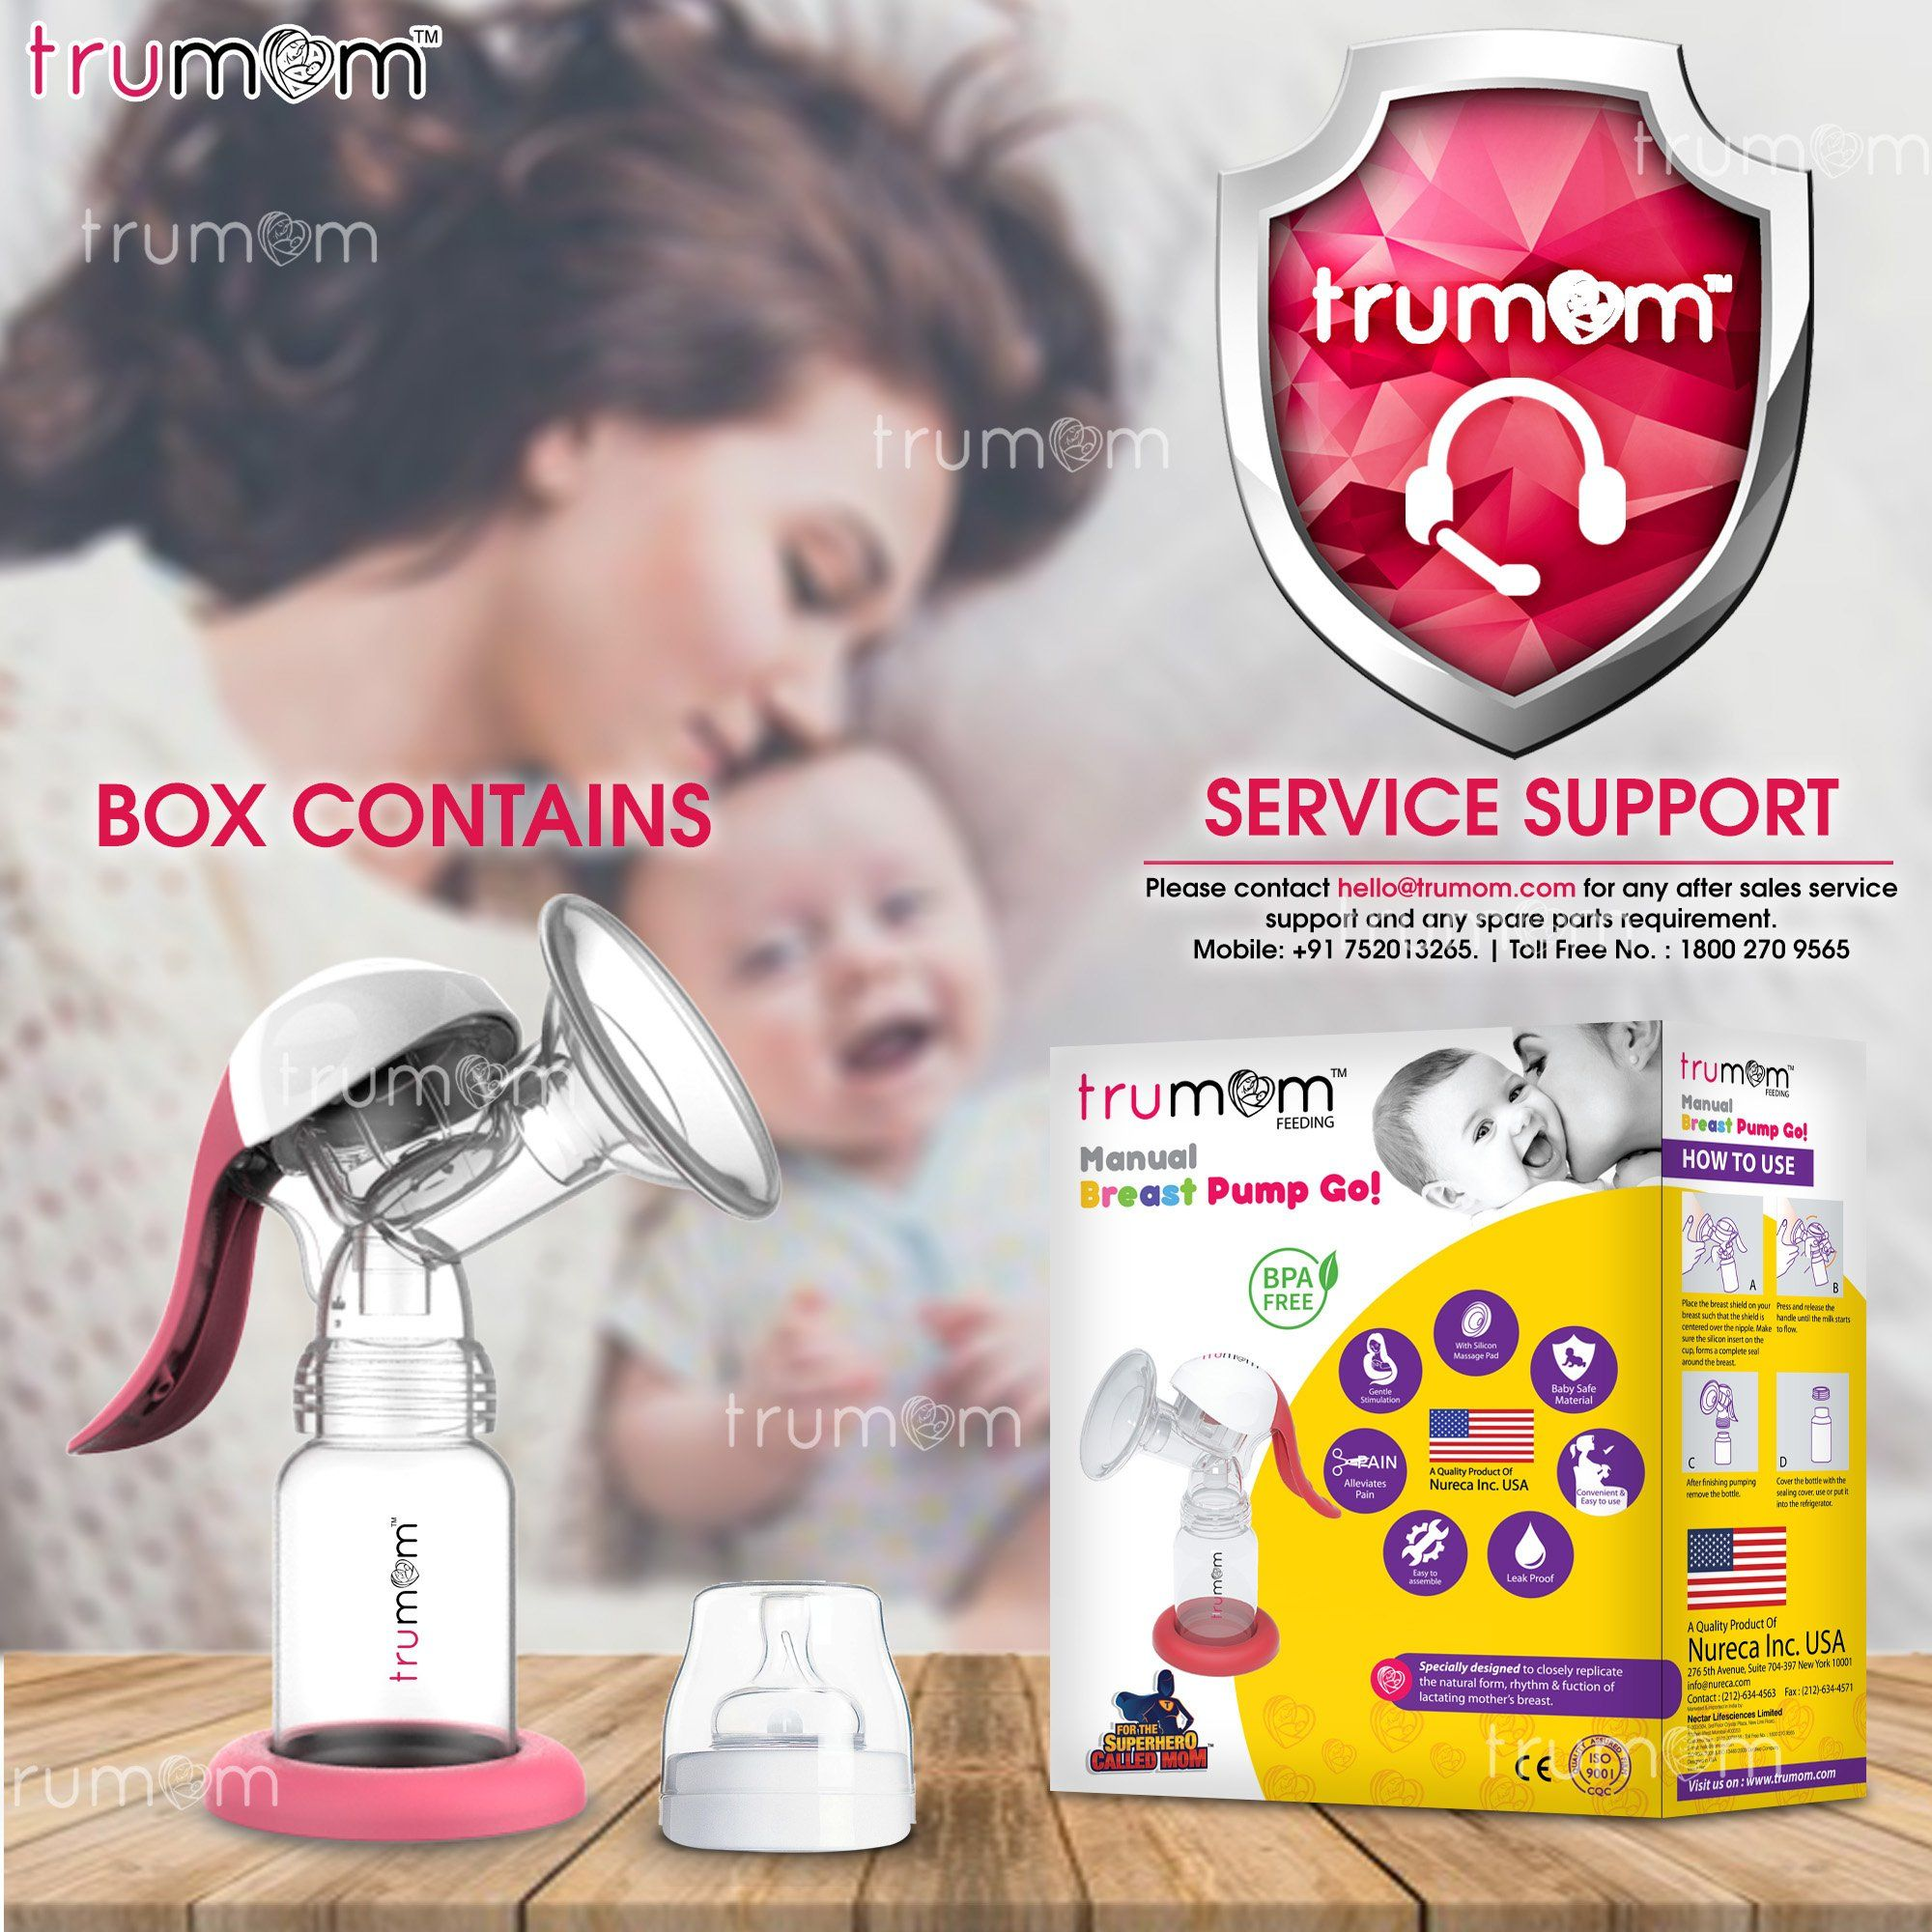 Trumom Manual breast pump - trumom